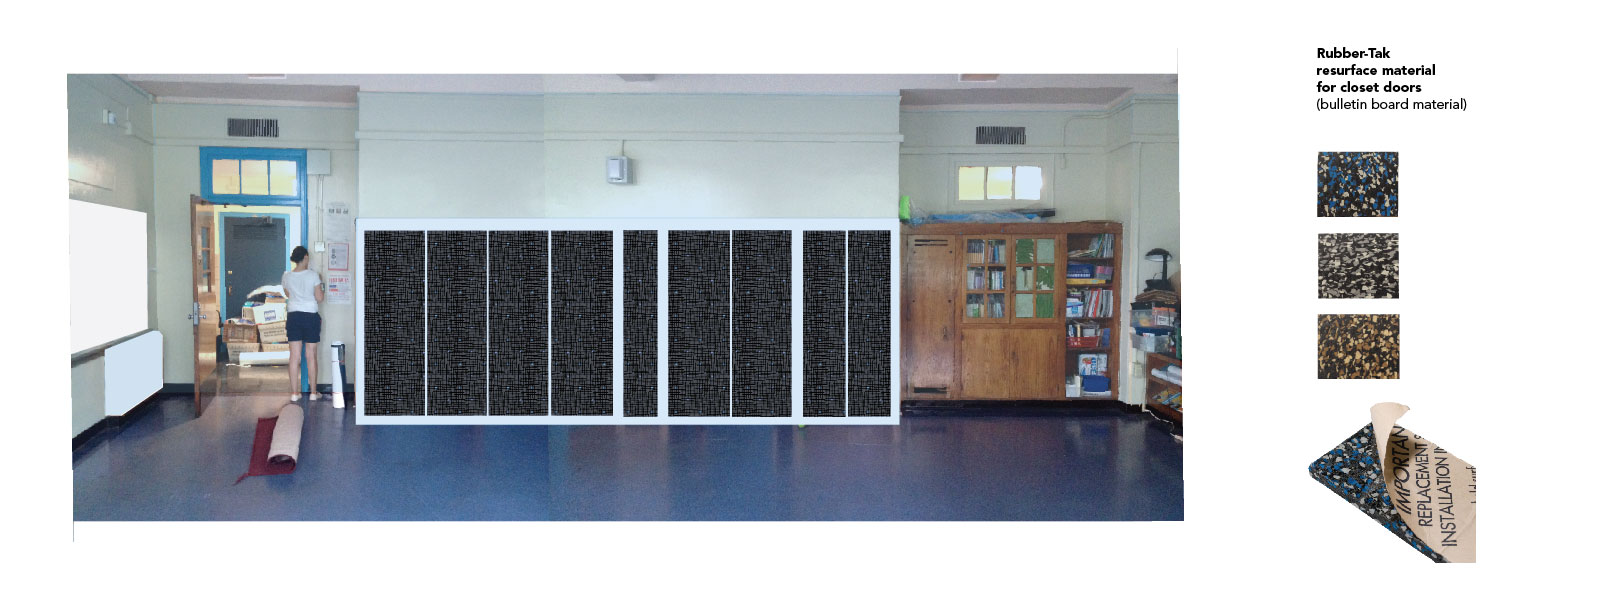 This is a rough mock up of how sound absorbent Rubber Tak would be installed on the hard wood closet doors in Room 220 and create a large display space for students work.